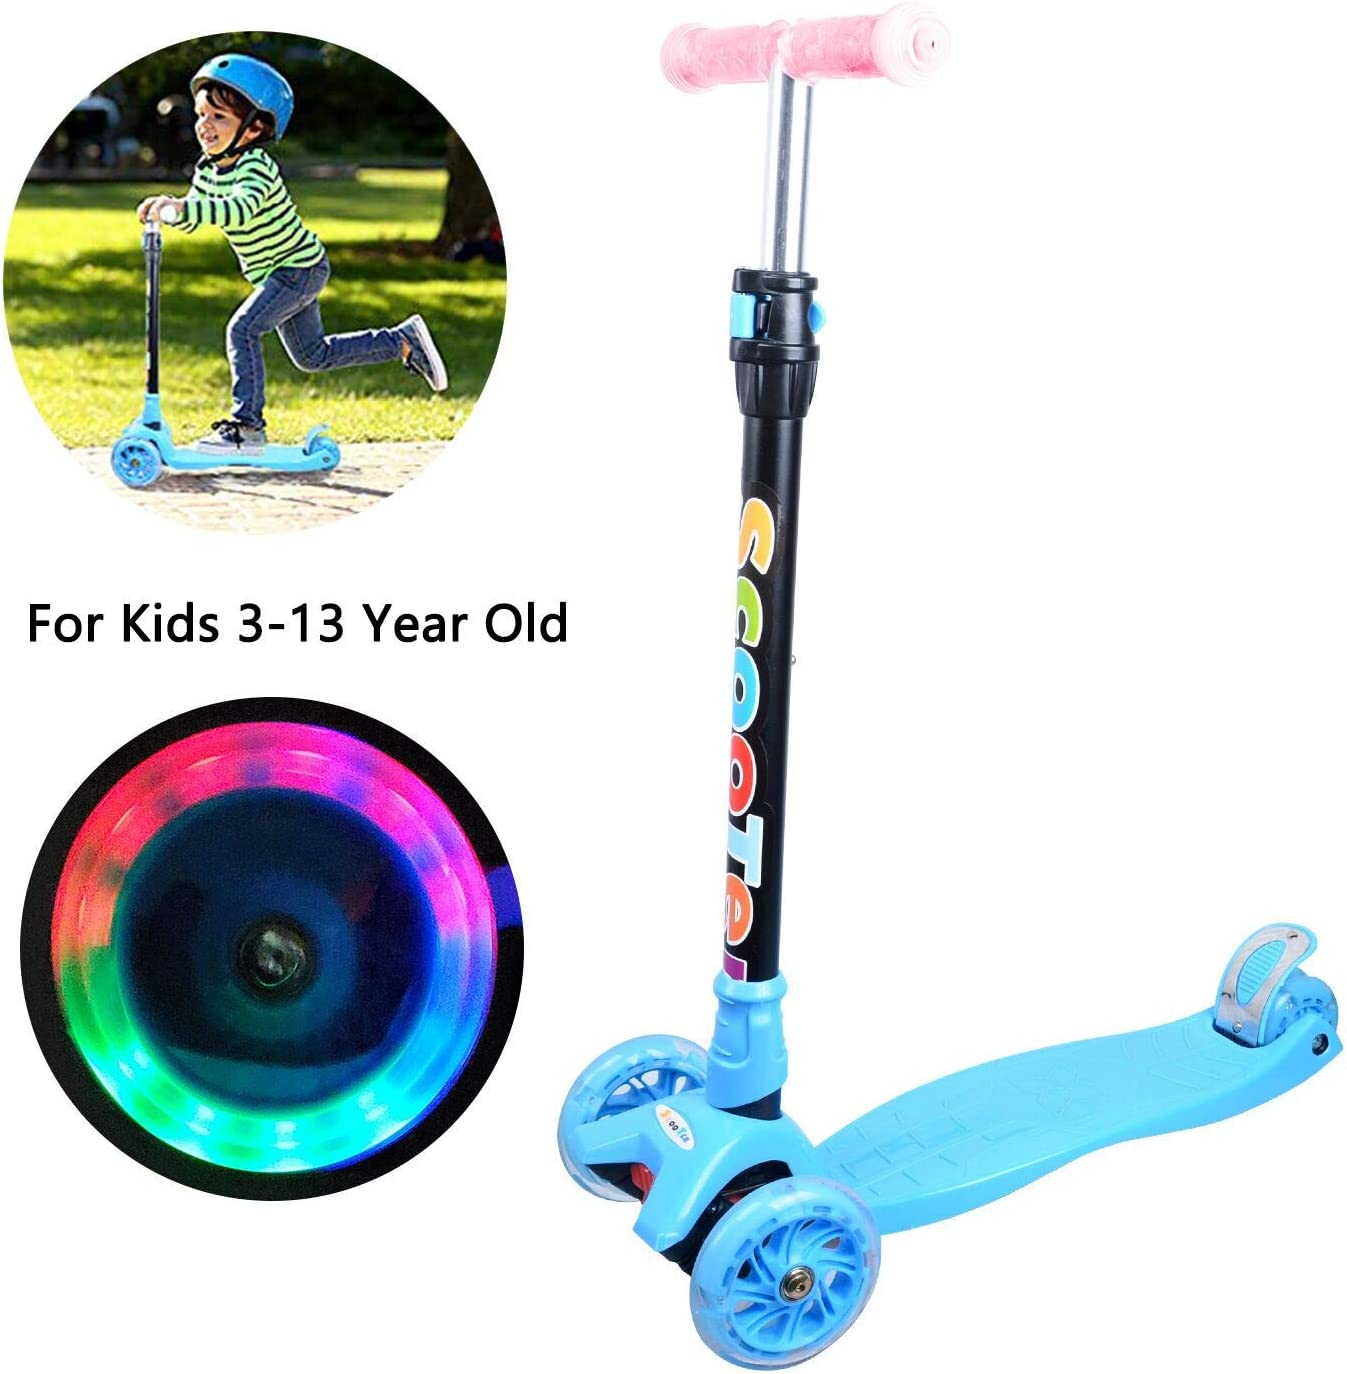 Kick Scooter for Kids Toddlers Scooter Girls or Boys 3 Wheel 4 Adjustable Height Children Scooter, Lean to Steer with PU LED Light Up Flashing Wheels Children Age 3-12 Years Old